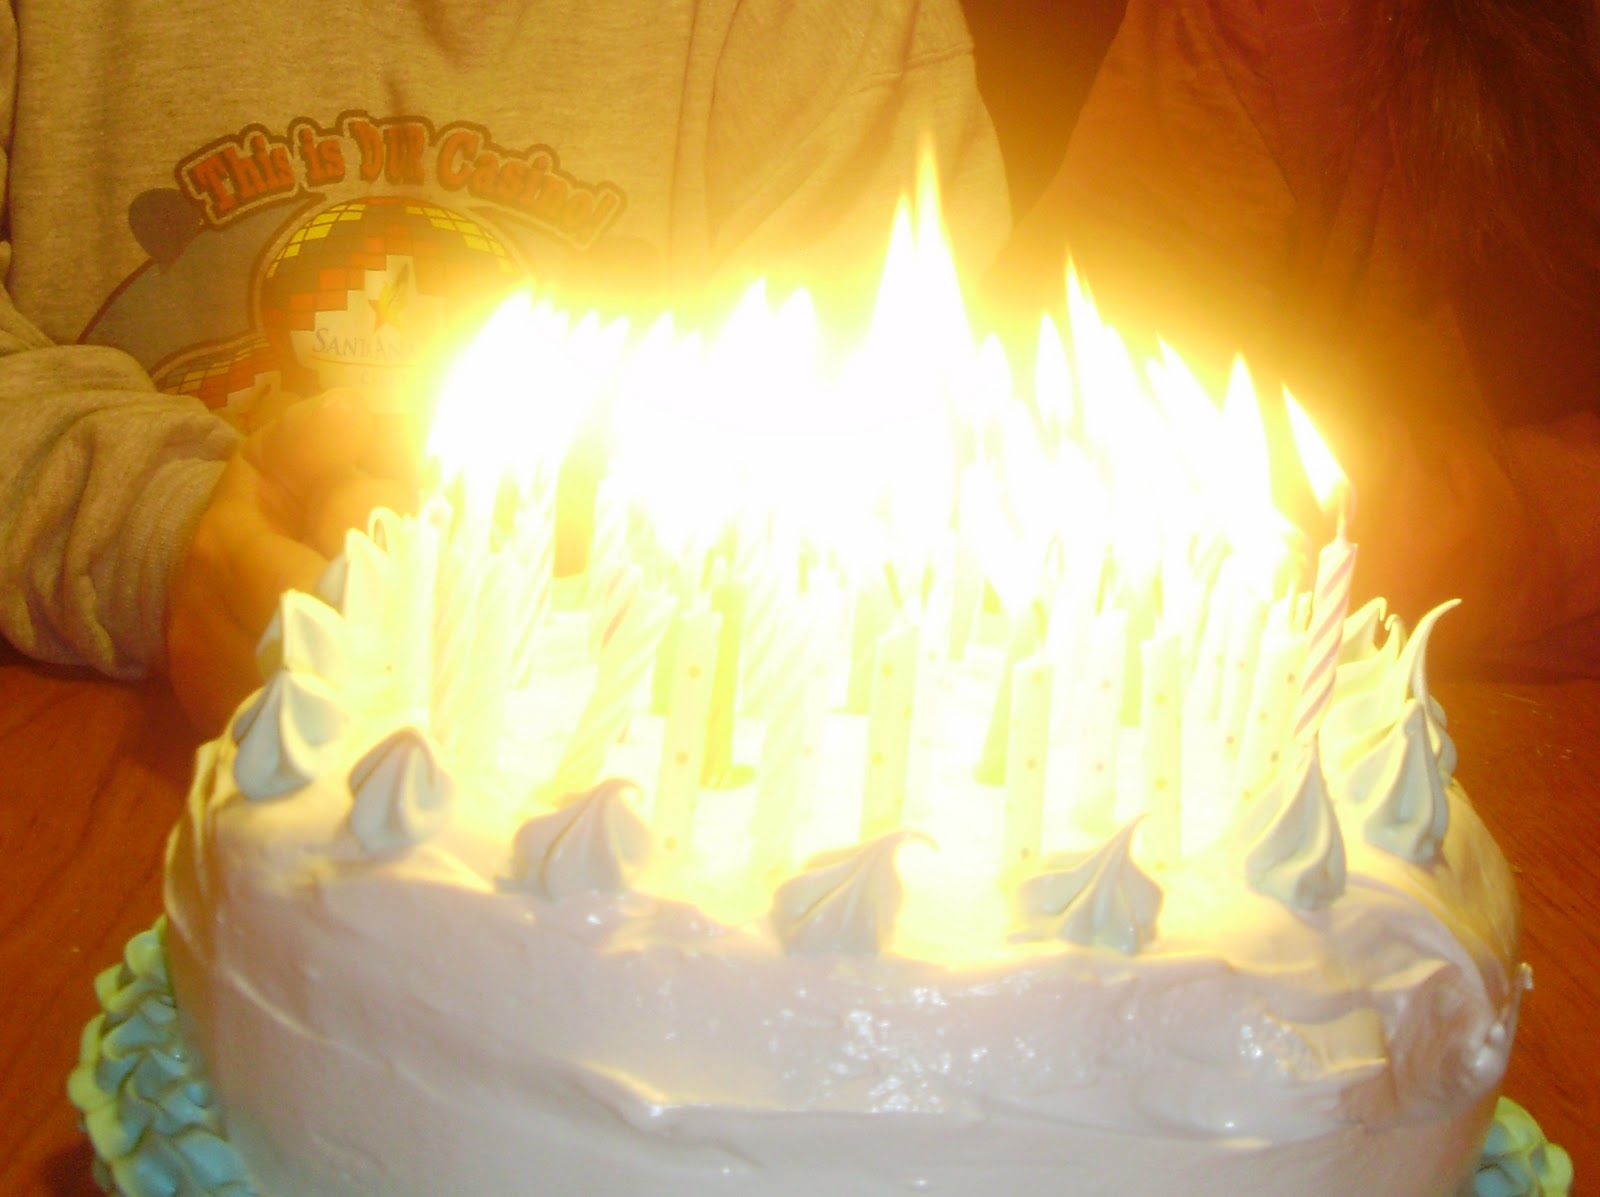 Pictures Of Birthday Cakes With Many Candles : If I Had a Hammer: Birthday Cake